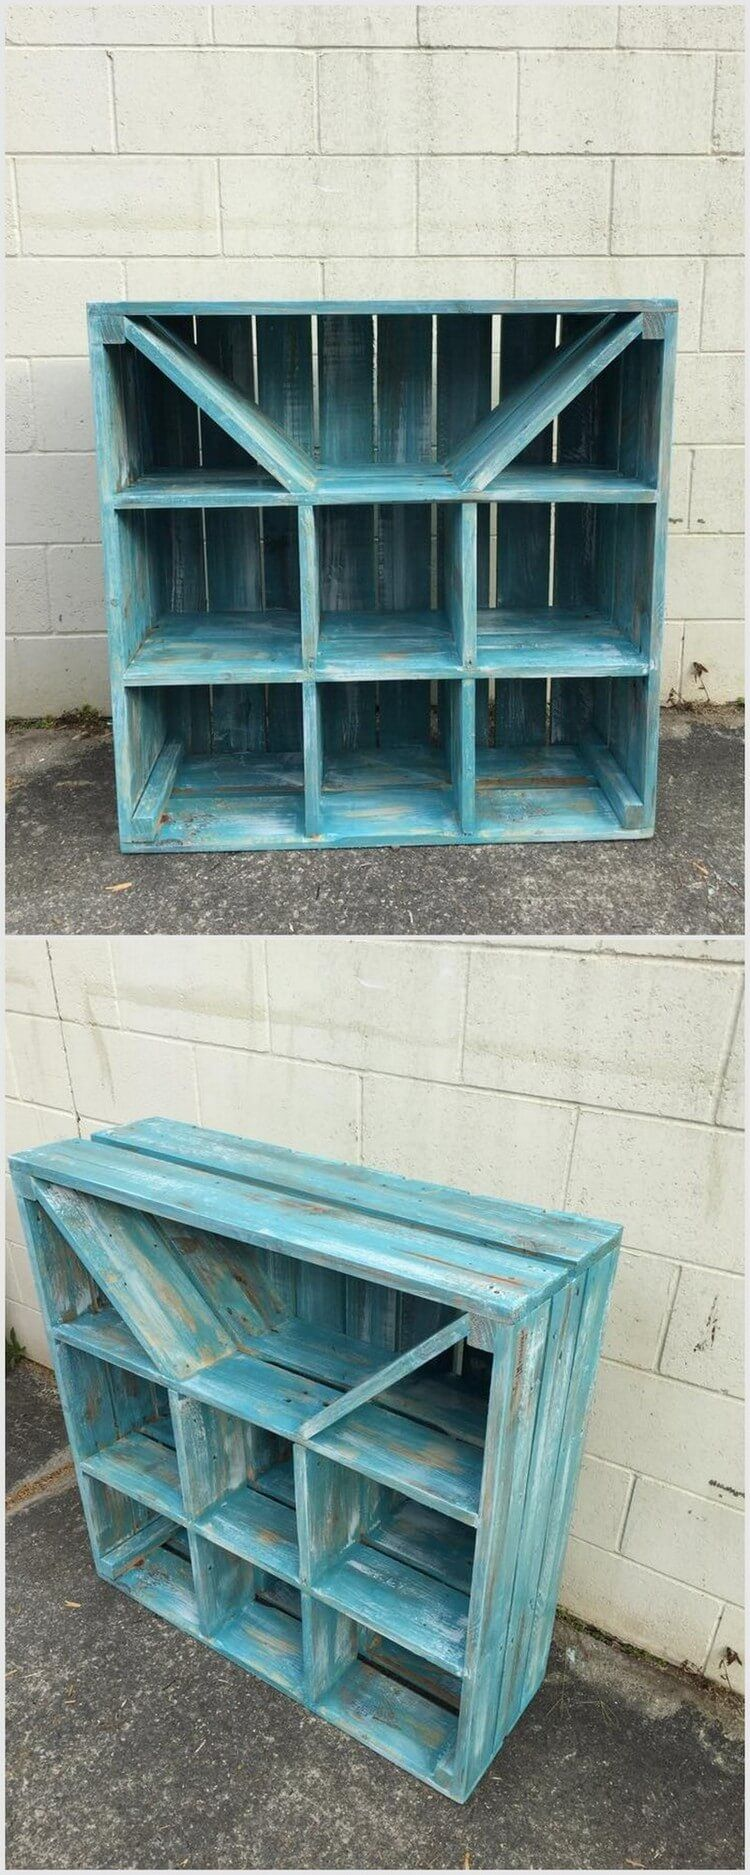 15 Amazing Wood Pallet Projects for This Summer | Madera, Muebles ...